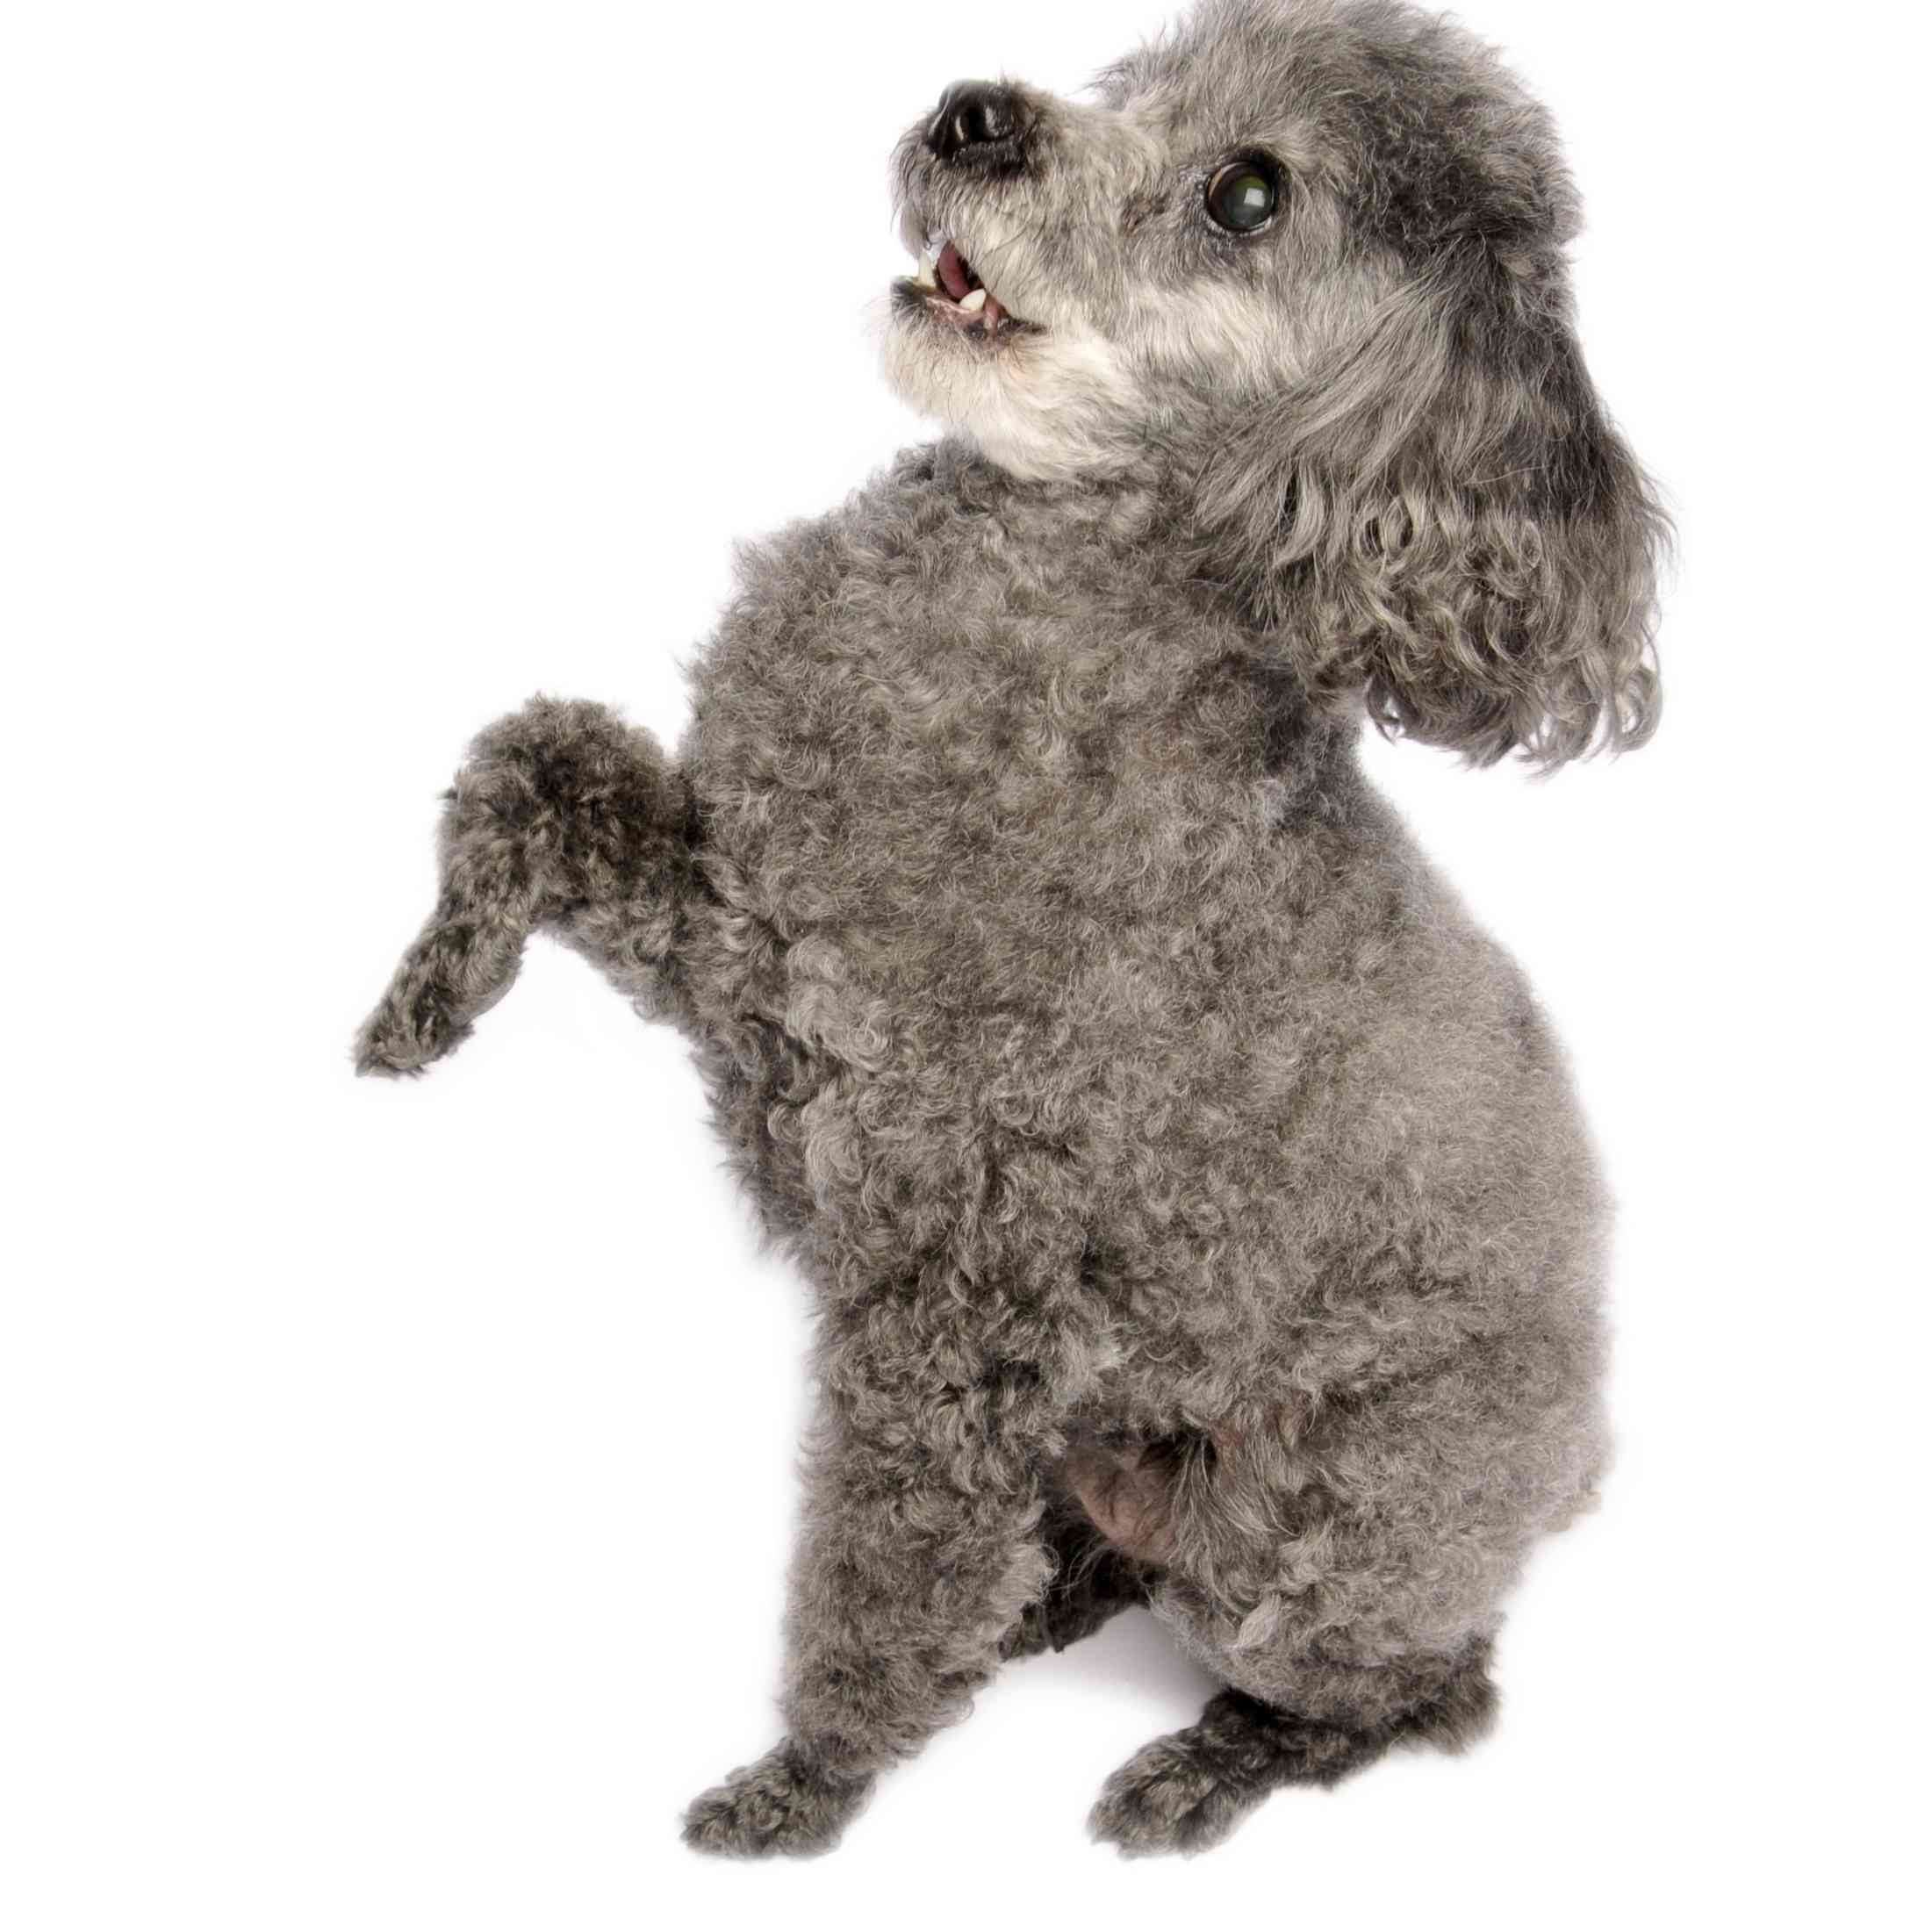 Grey Toy Poodle doing a trick.